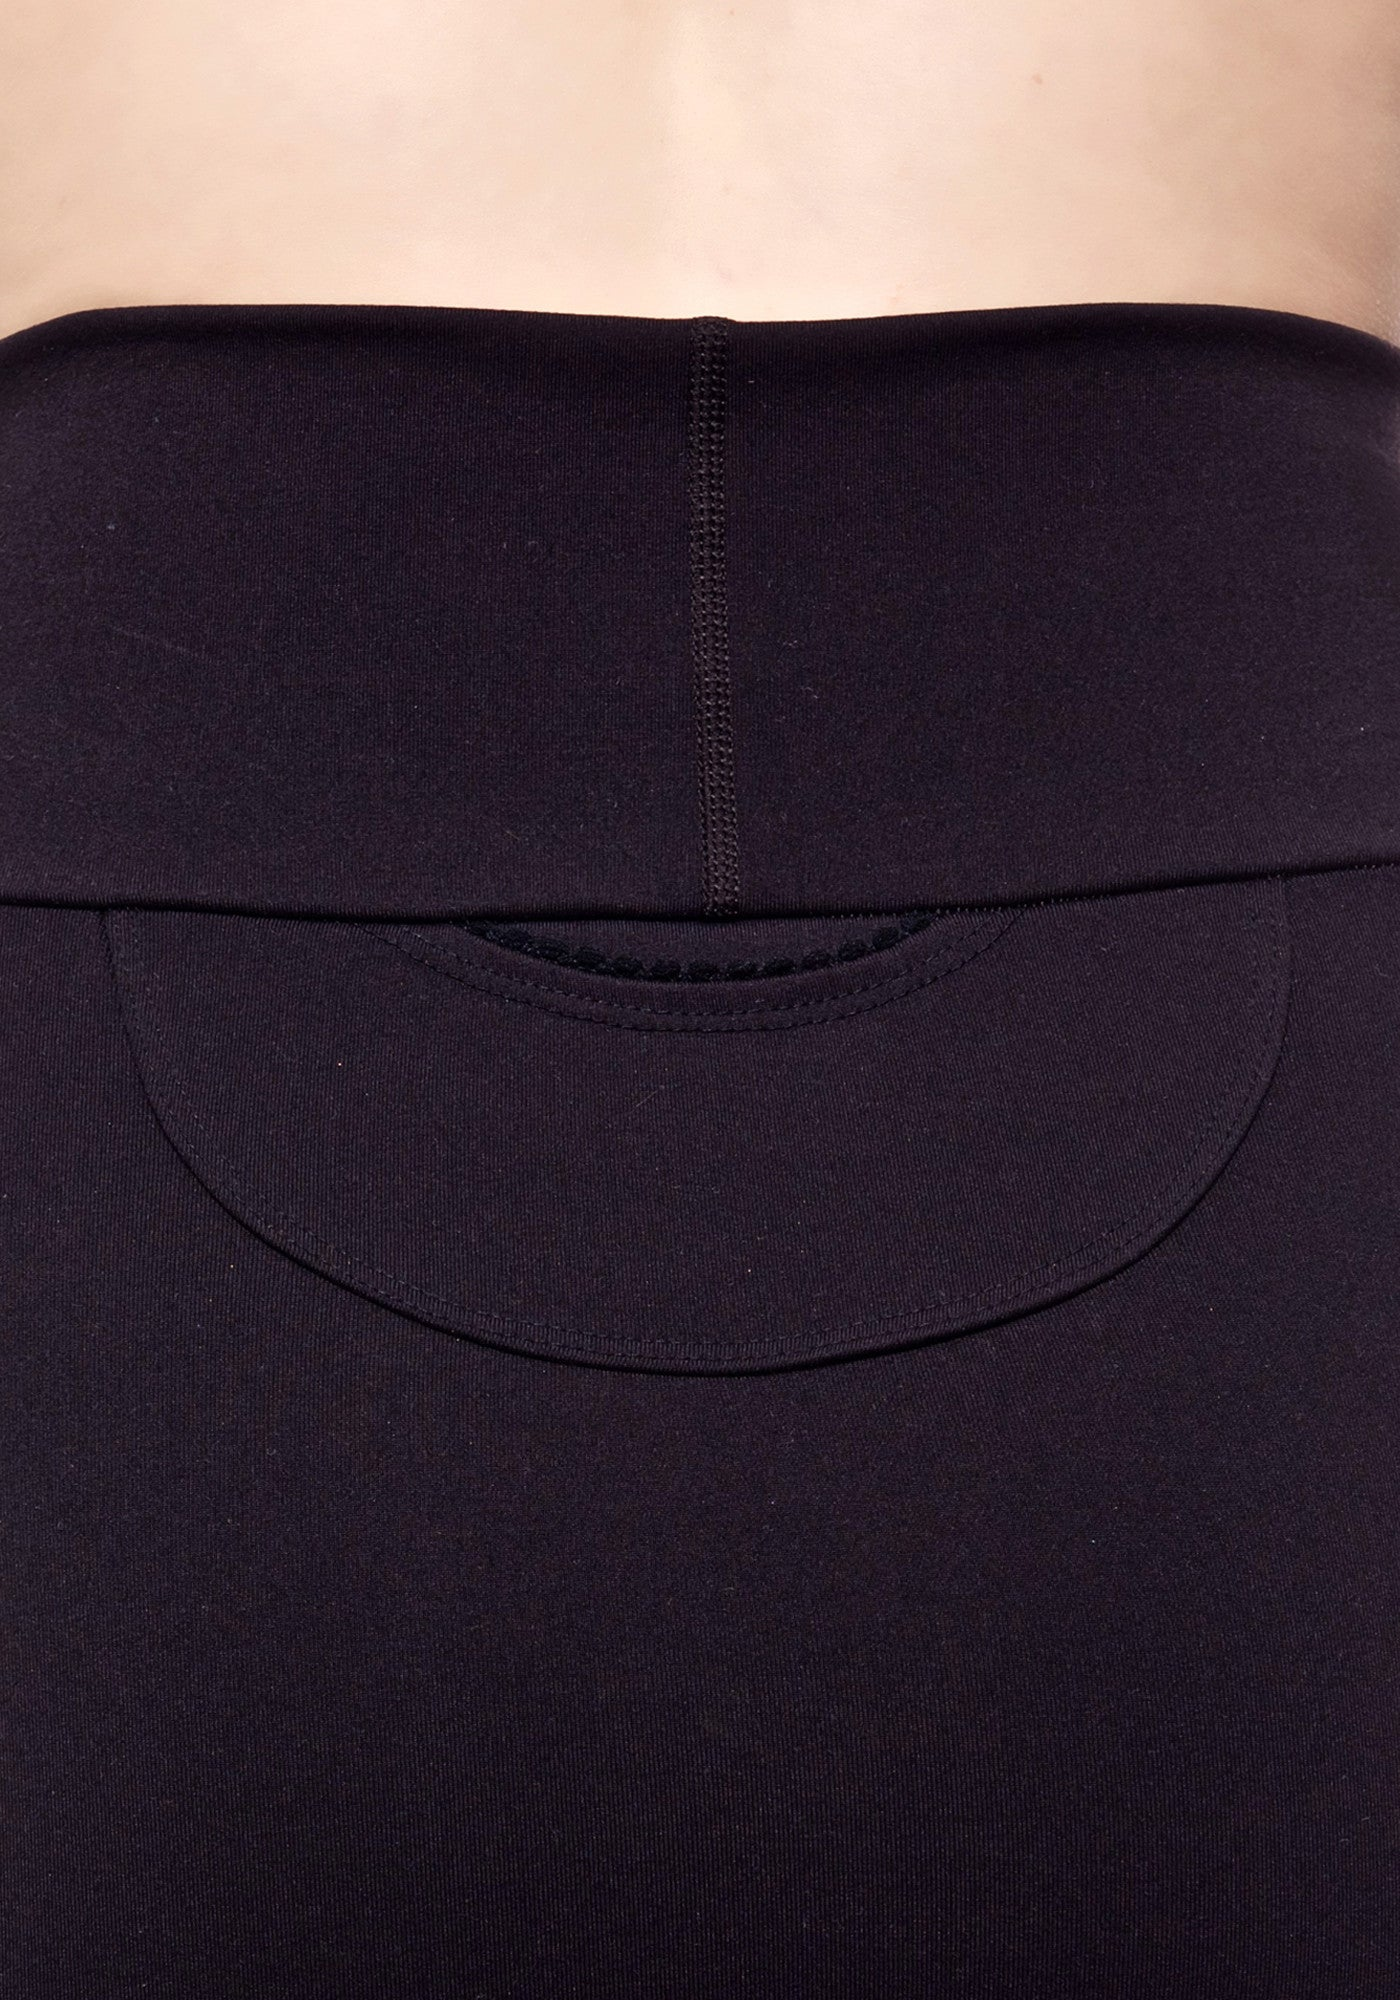 Back Pocket close up of our high waisted black mini skirt made from premium high performance activewear fabric with handy back waist pocket